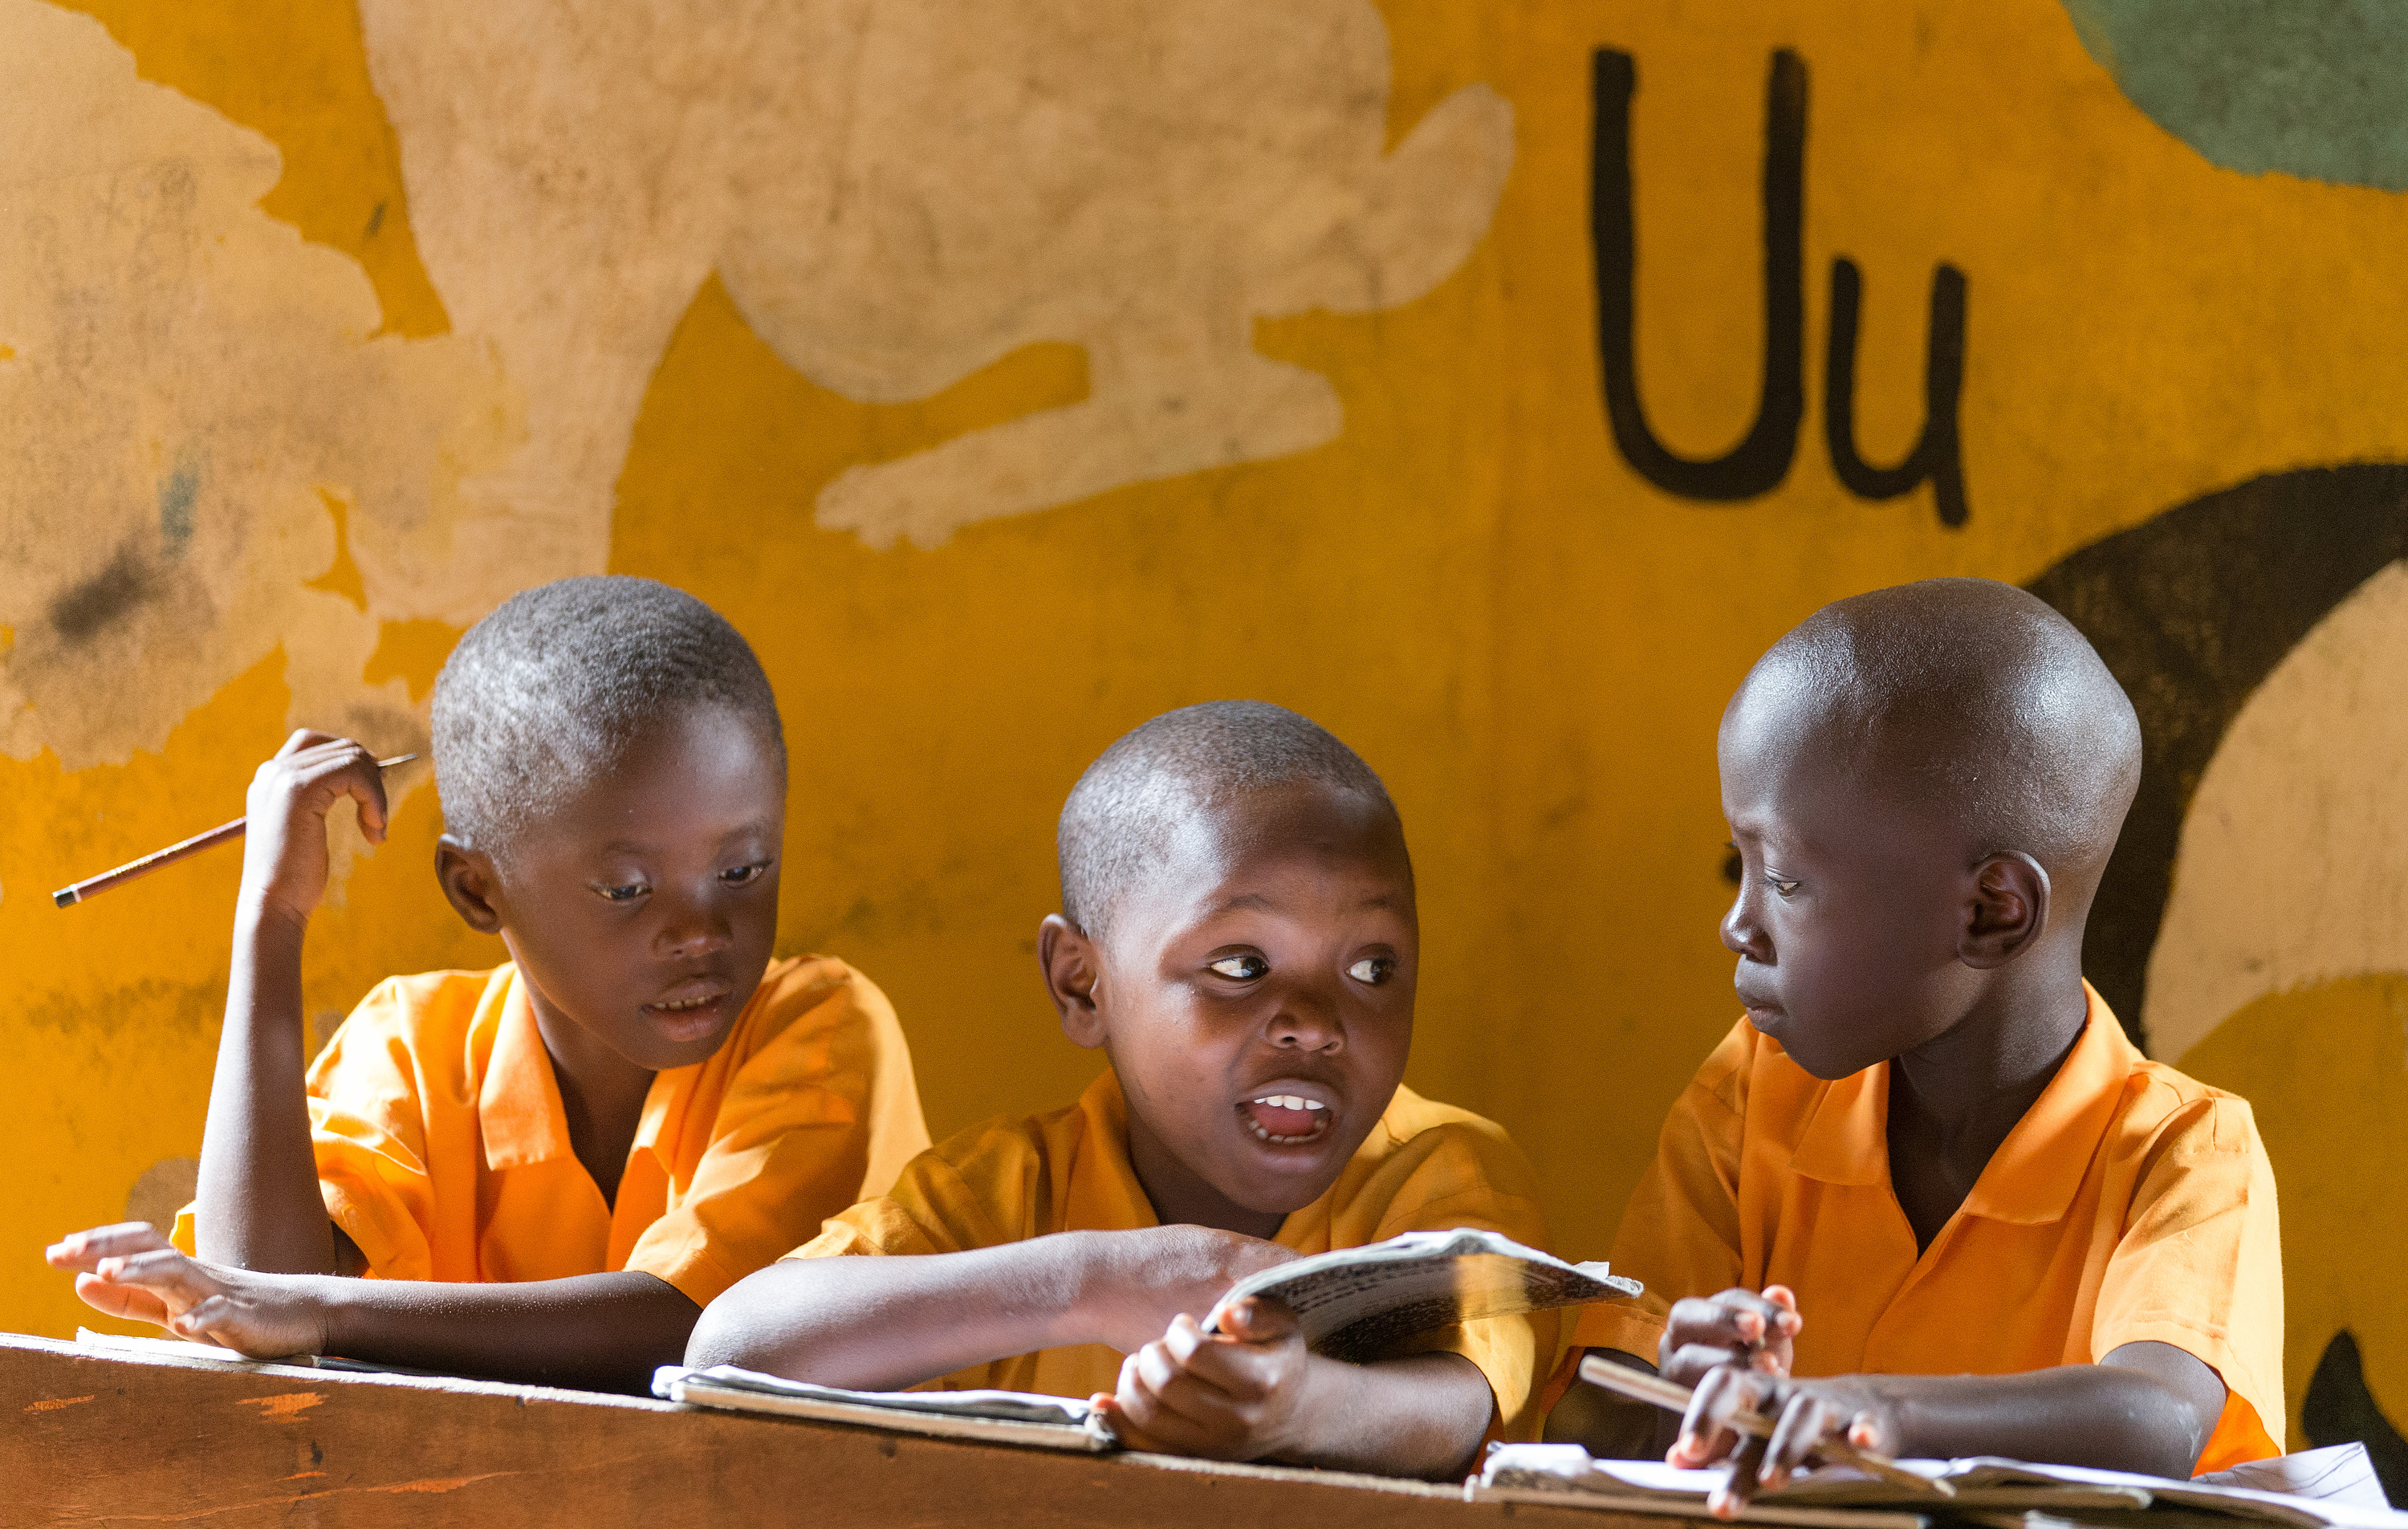 Students work together on spelling words at the Bishop Judith Craig Children's Village in Duahzon, Liberia, in 2017. The facility was established in 2000 to provide care for children left orphaned by Liberia's civil war. File photo by Mike DuBose, UMNS.